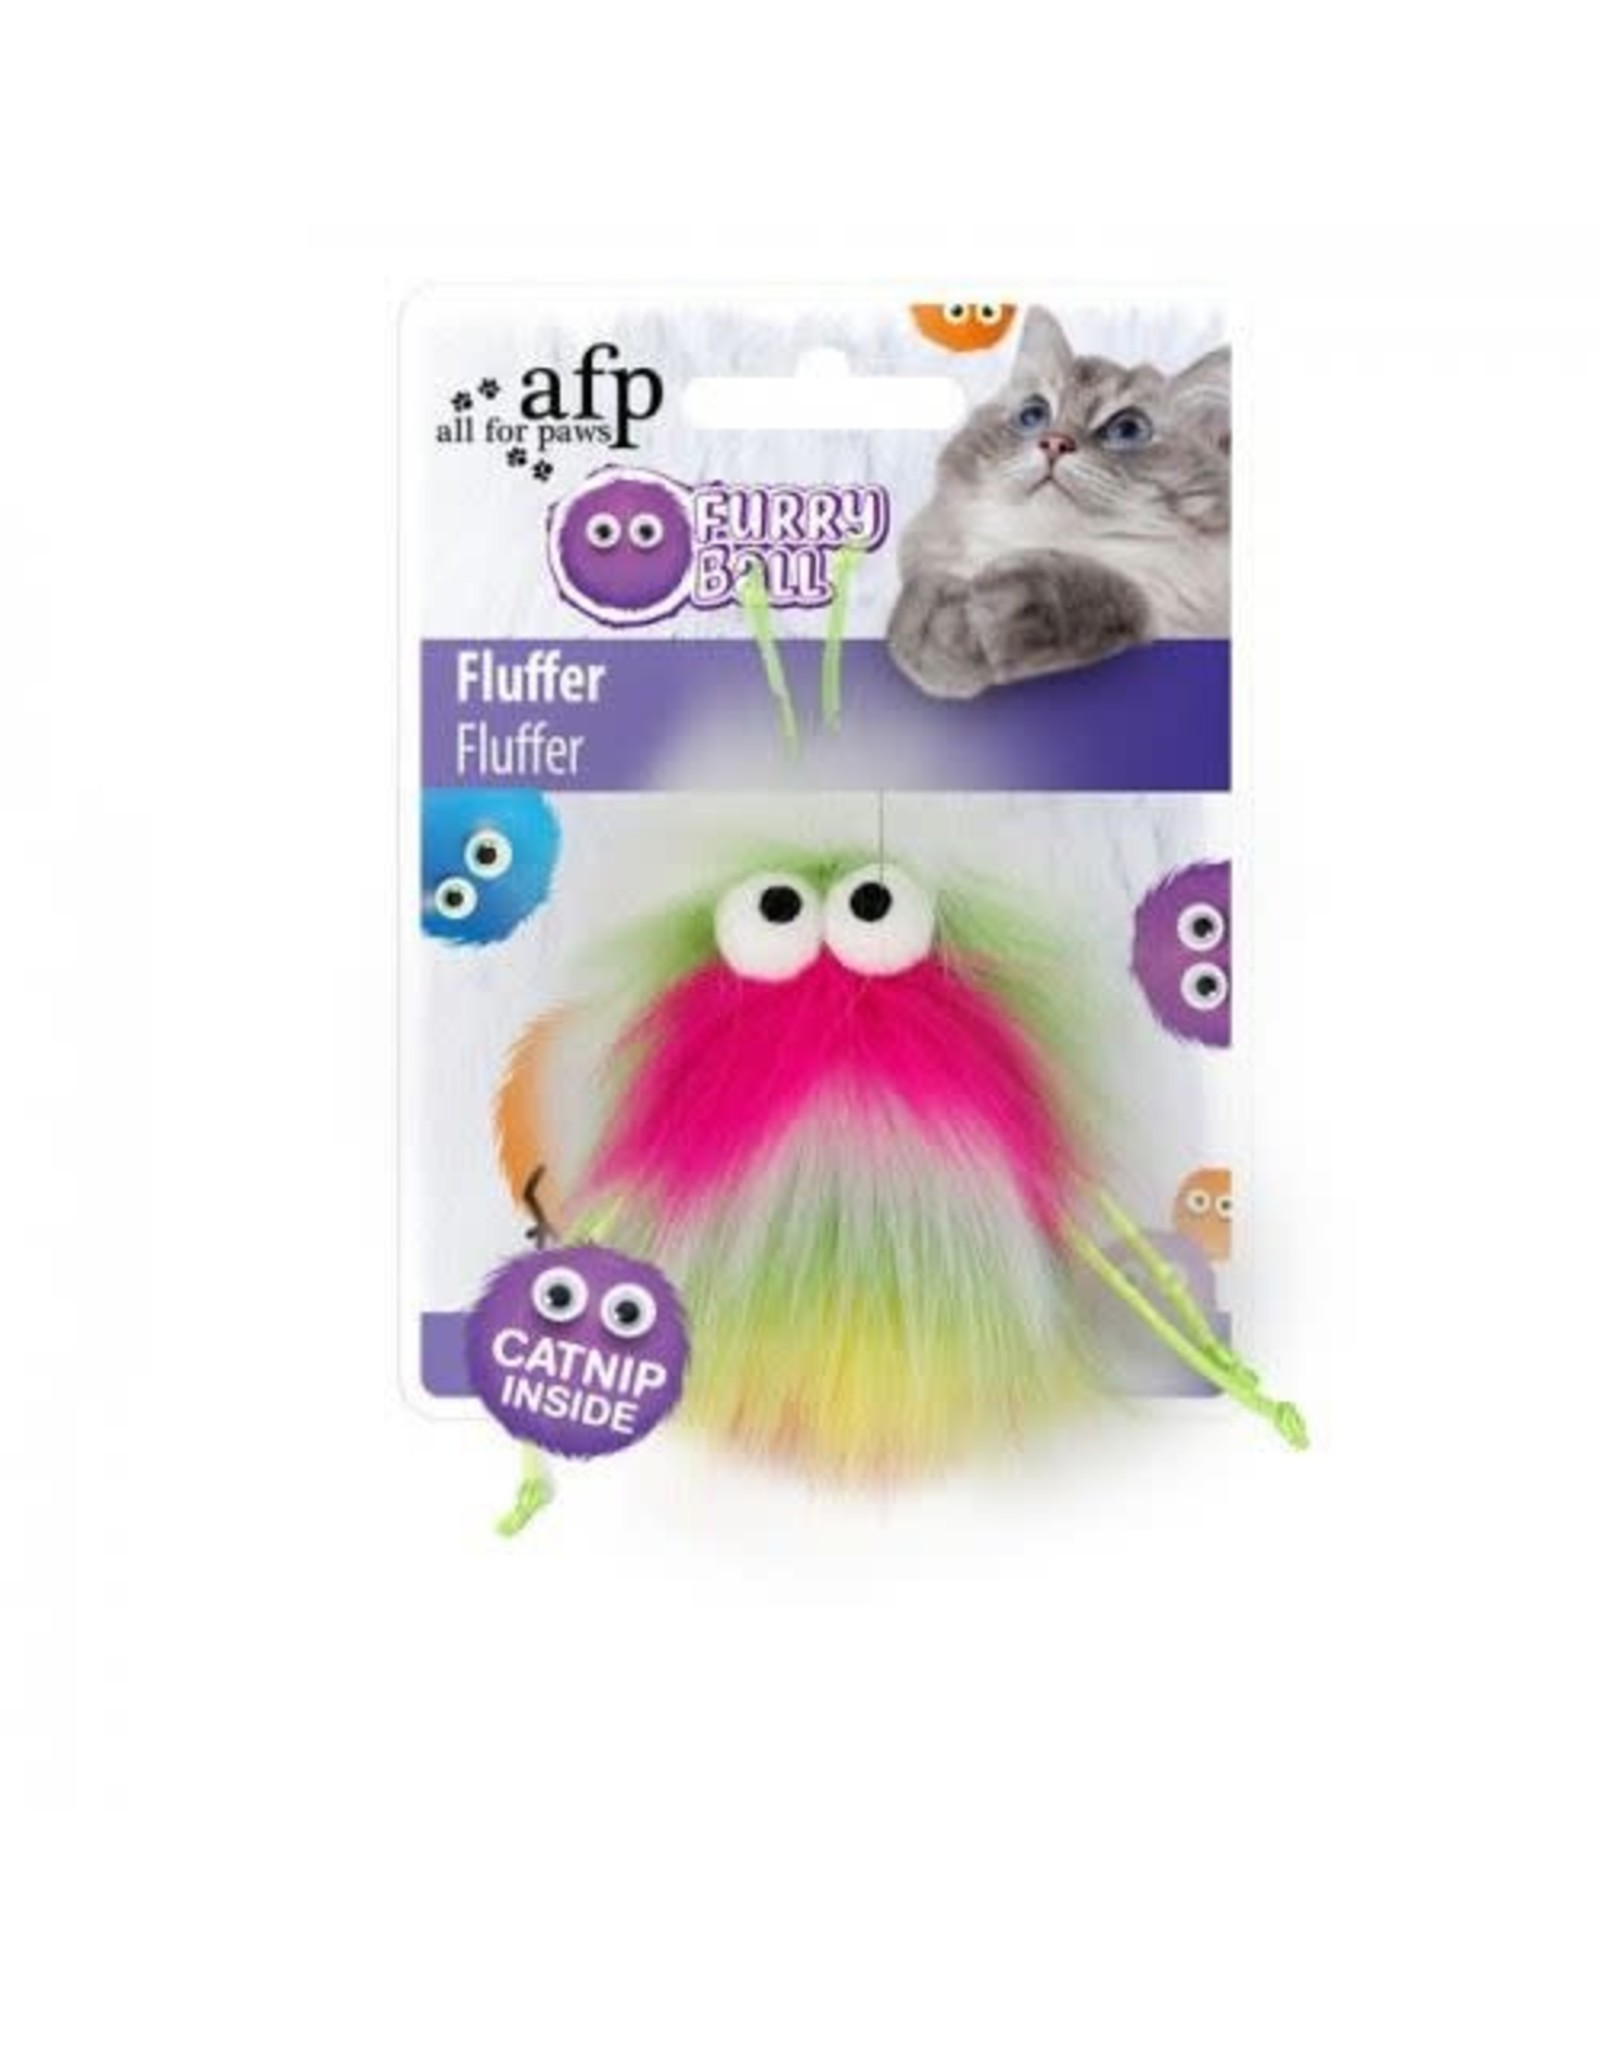 All For Paws Furry Ball Fluffer Cat Toy